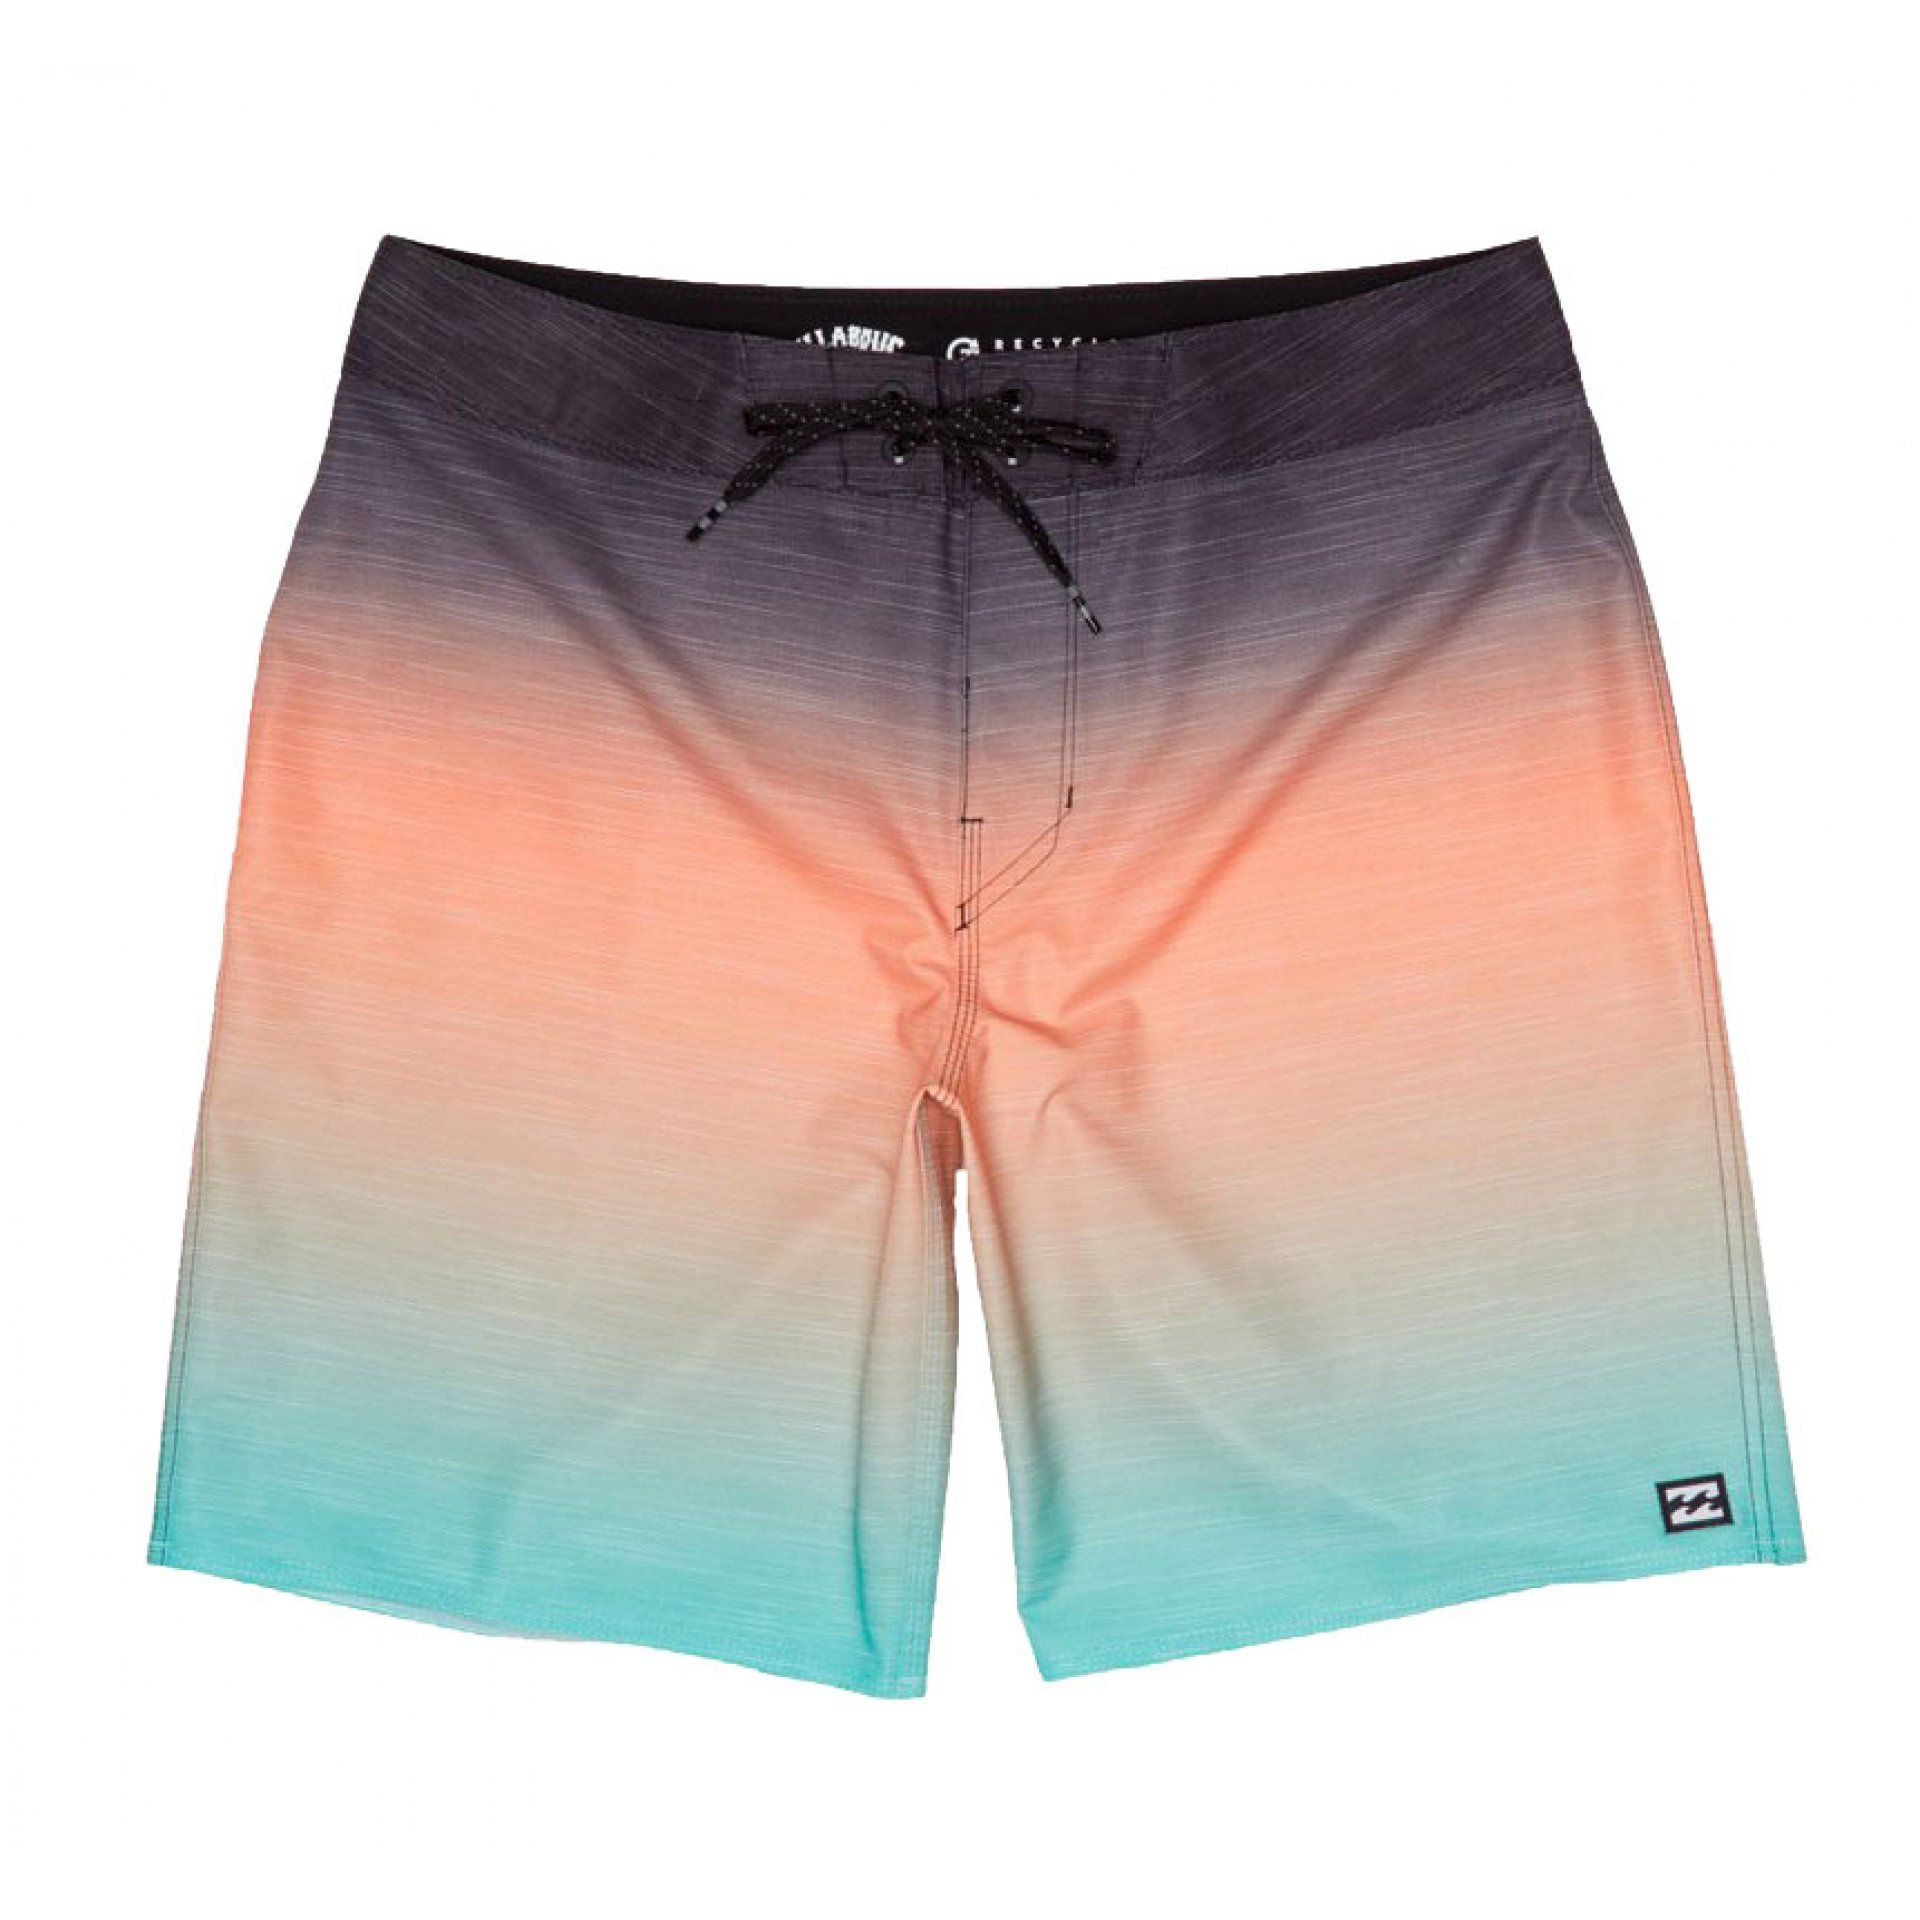 BOARDSHORTY BILLABONG ALL DAY FADE PRO S1BS45BIP0 539 MINT